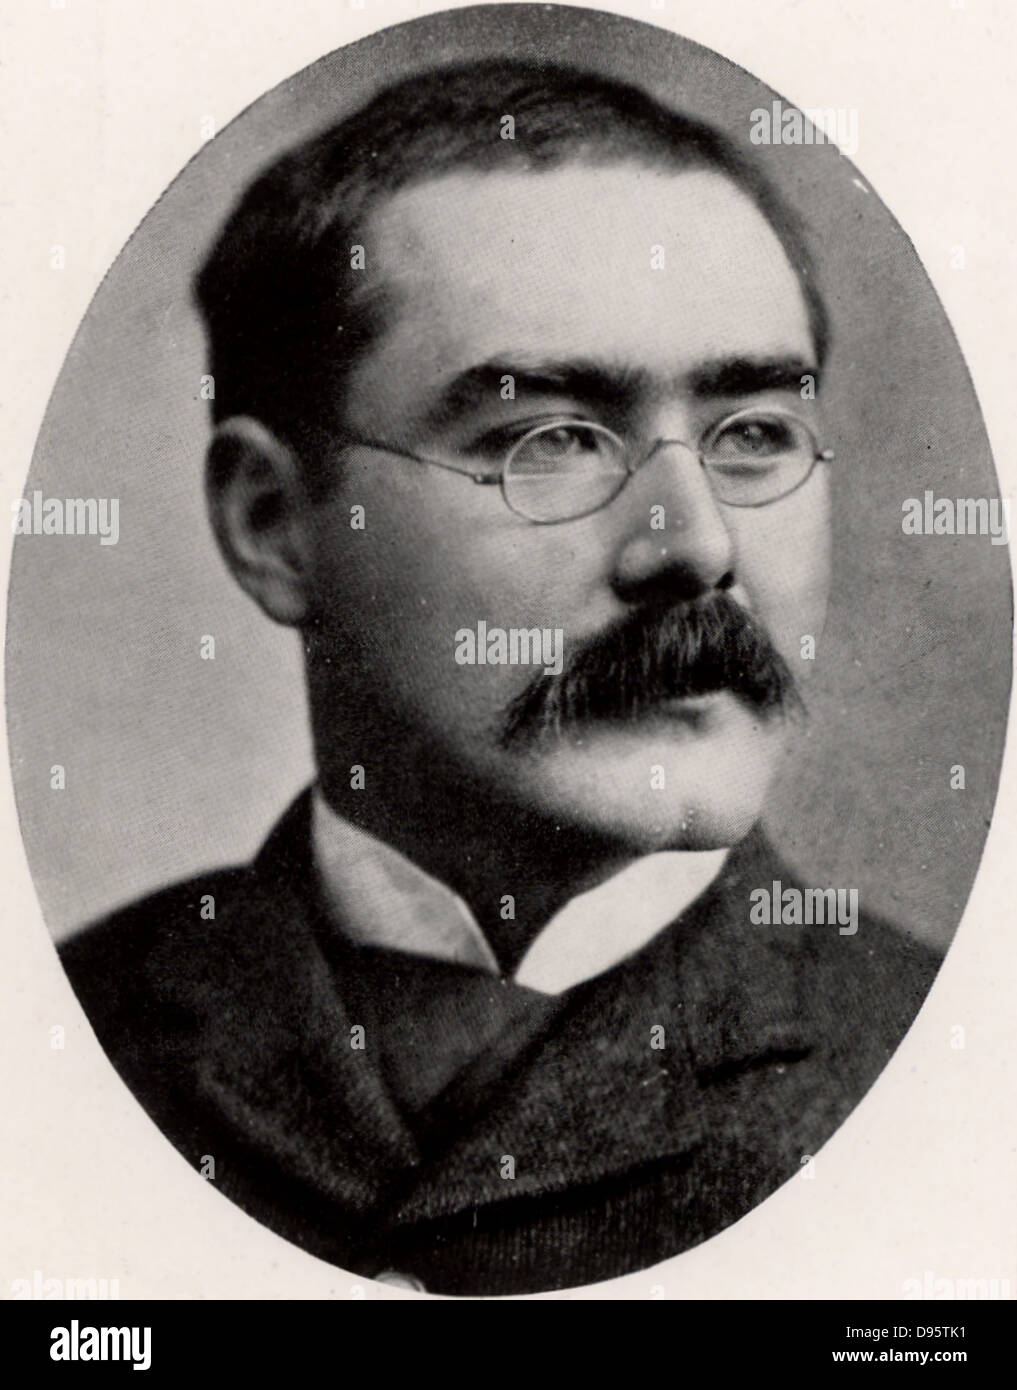 Rudyard Kipling (1865-1936) English journalist, novelist and poet, born in India. Halftone after a photograph. - Stock Image